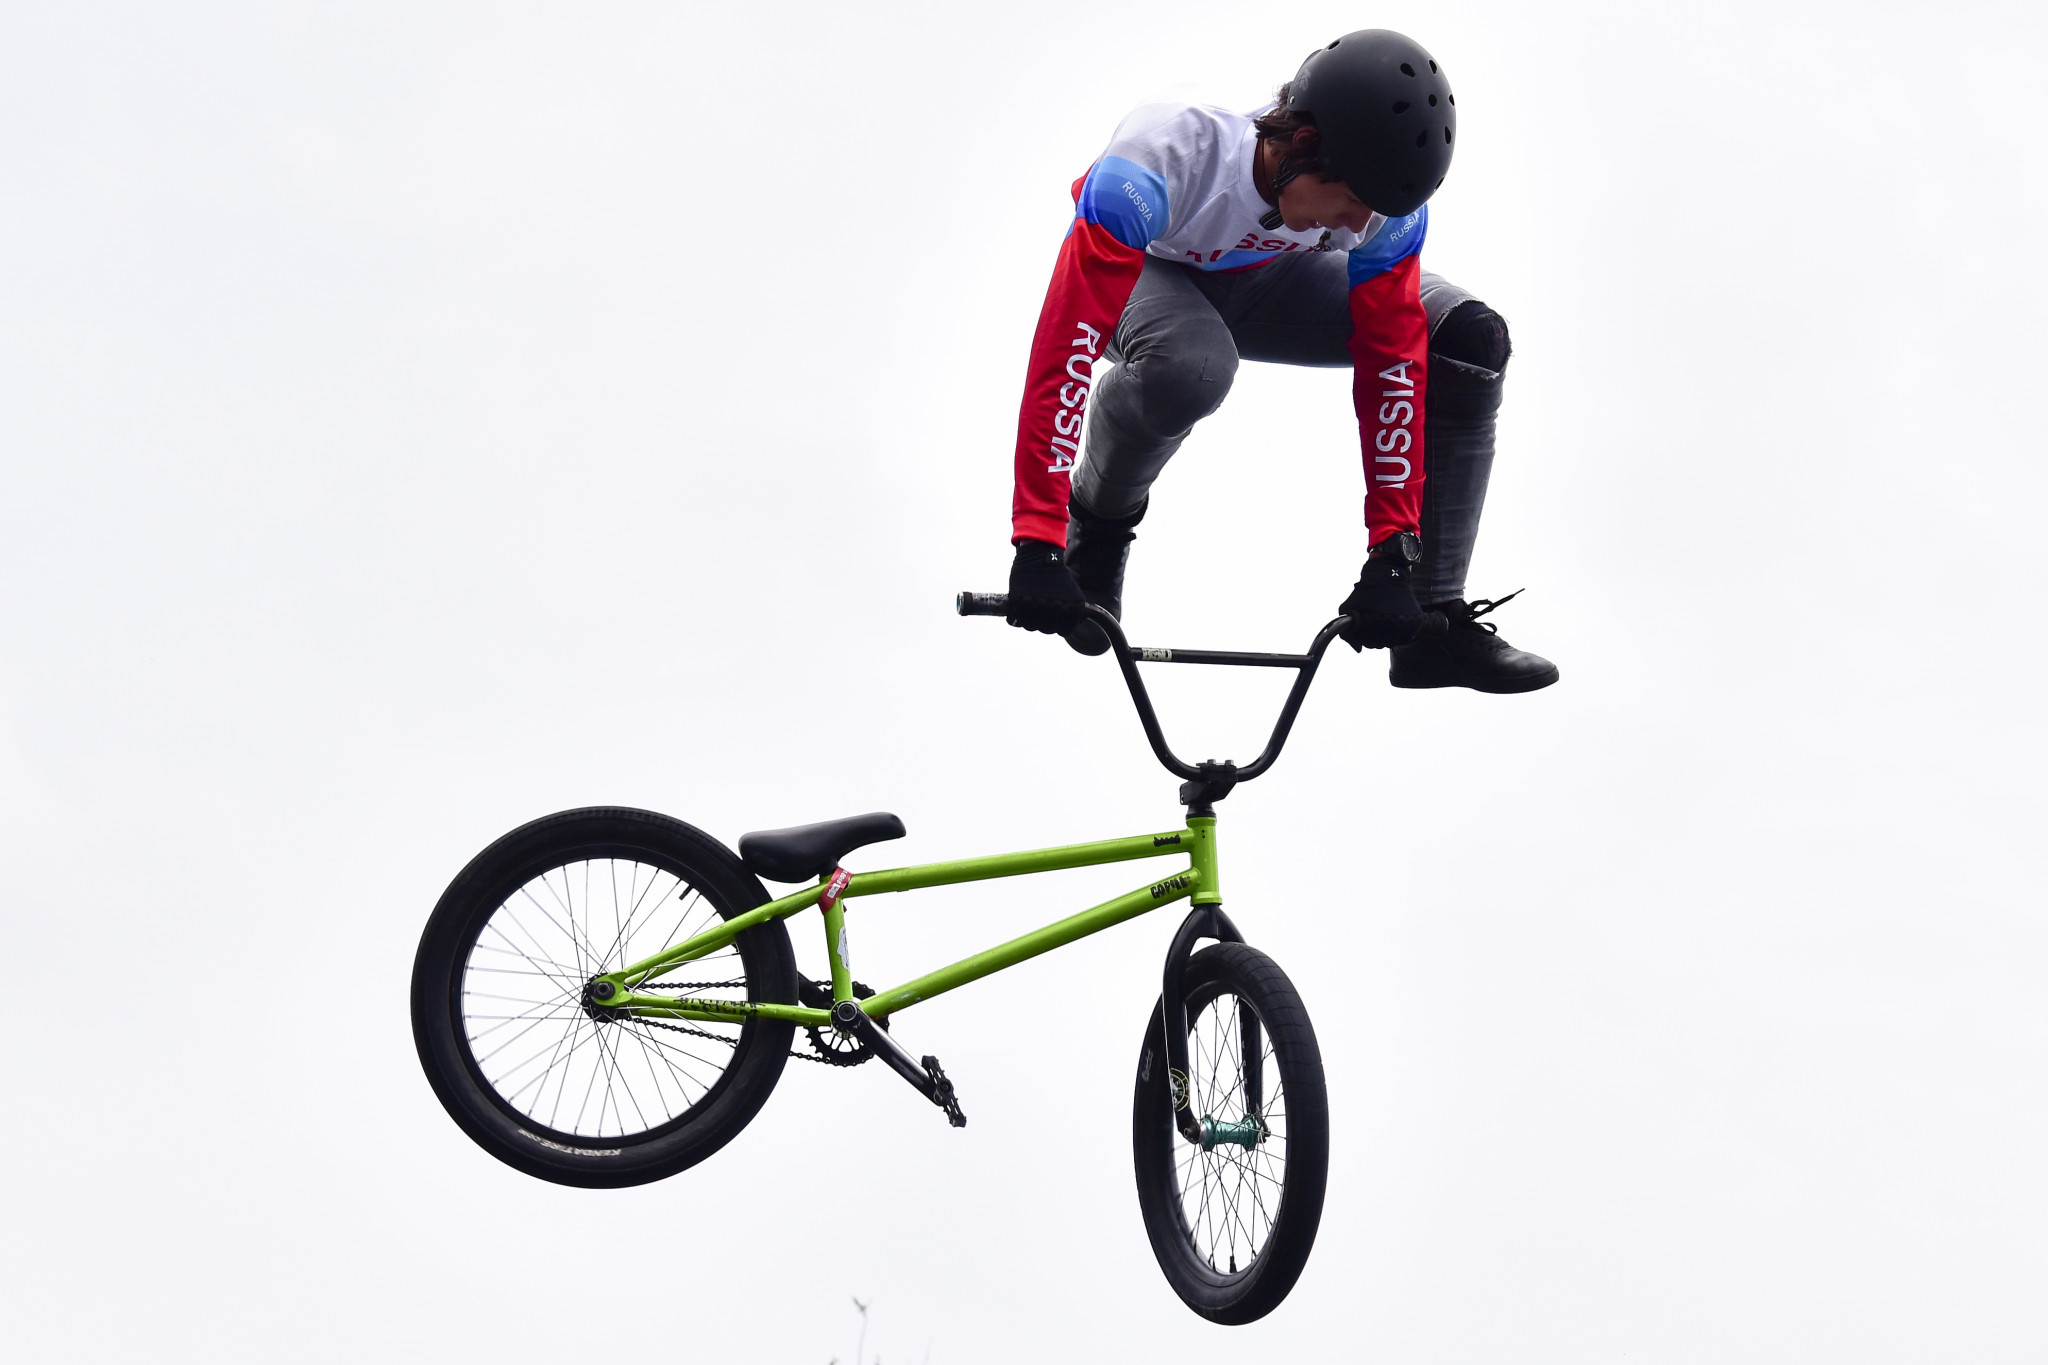 BMX freestyle is one of the sports due to feature at the first World Urban Games in Budapest ©Getty Images